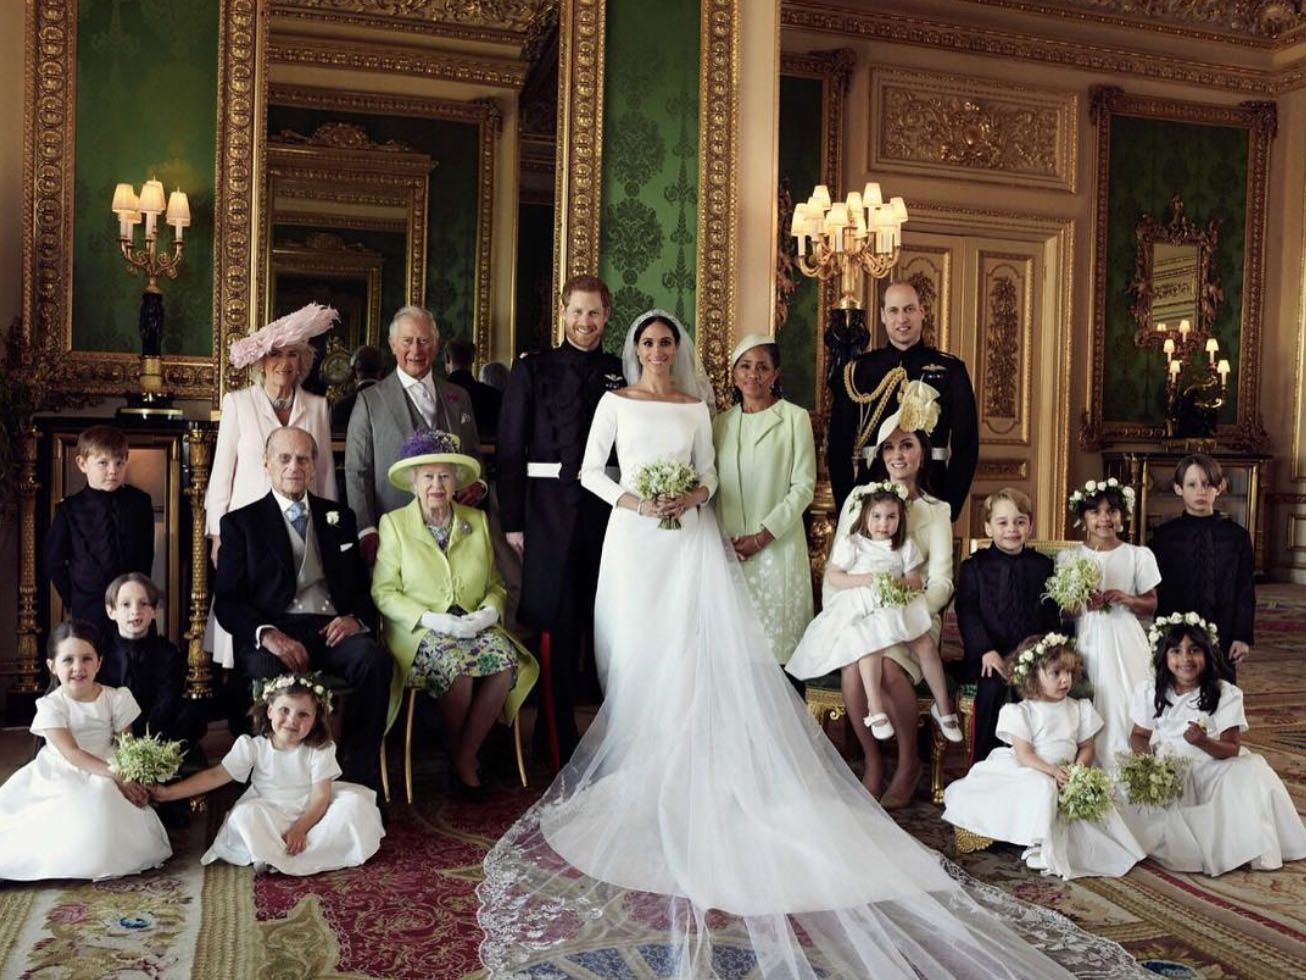 32 Best Royal Conspiracy Theories - Craziest British Royal